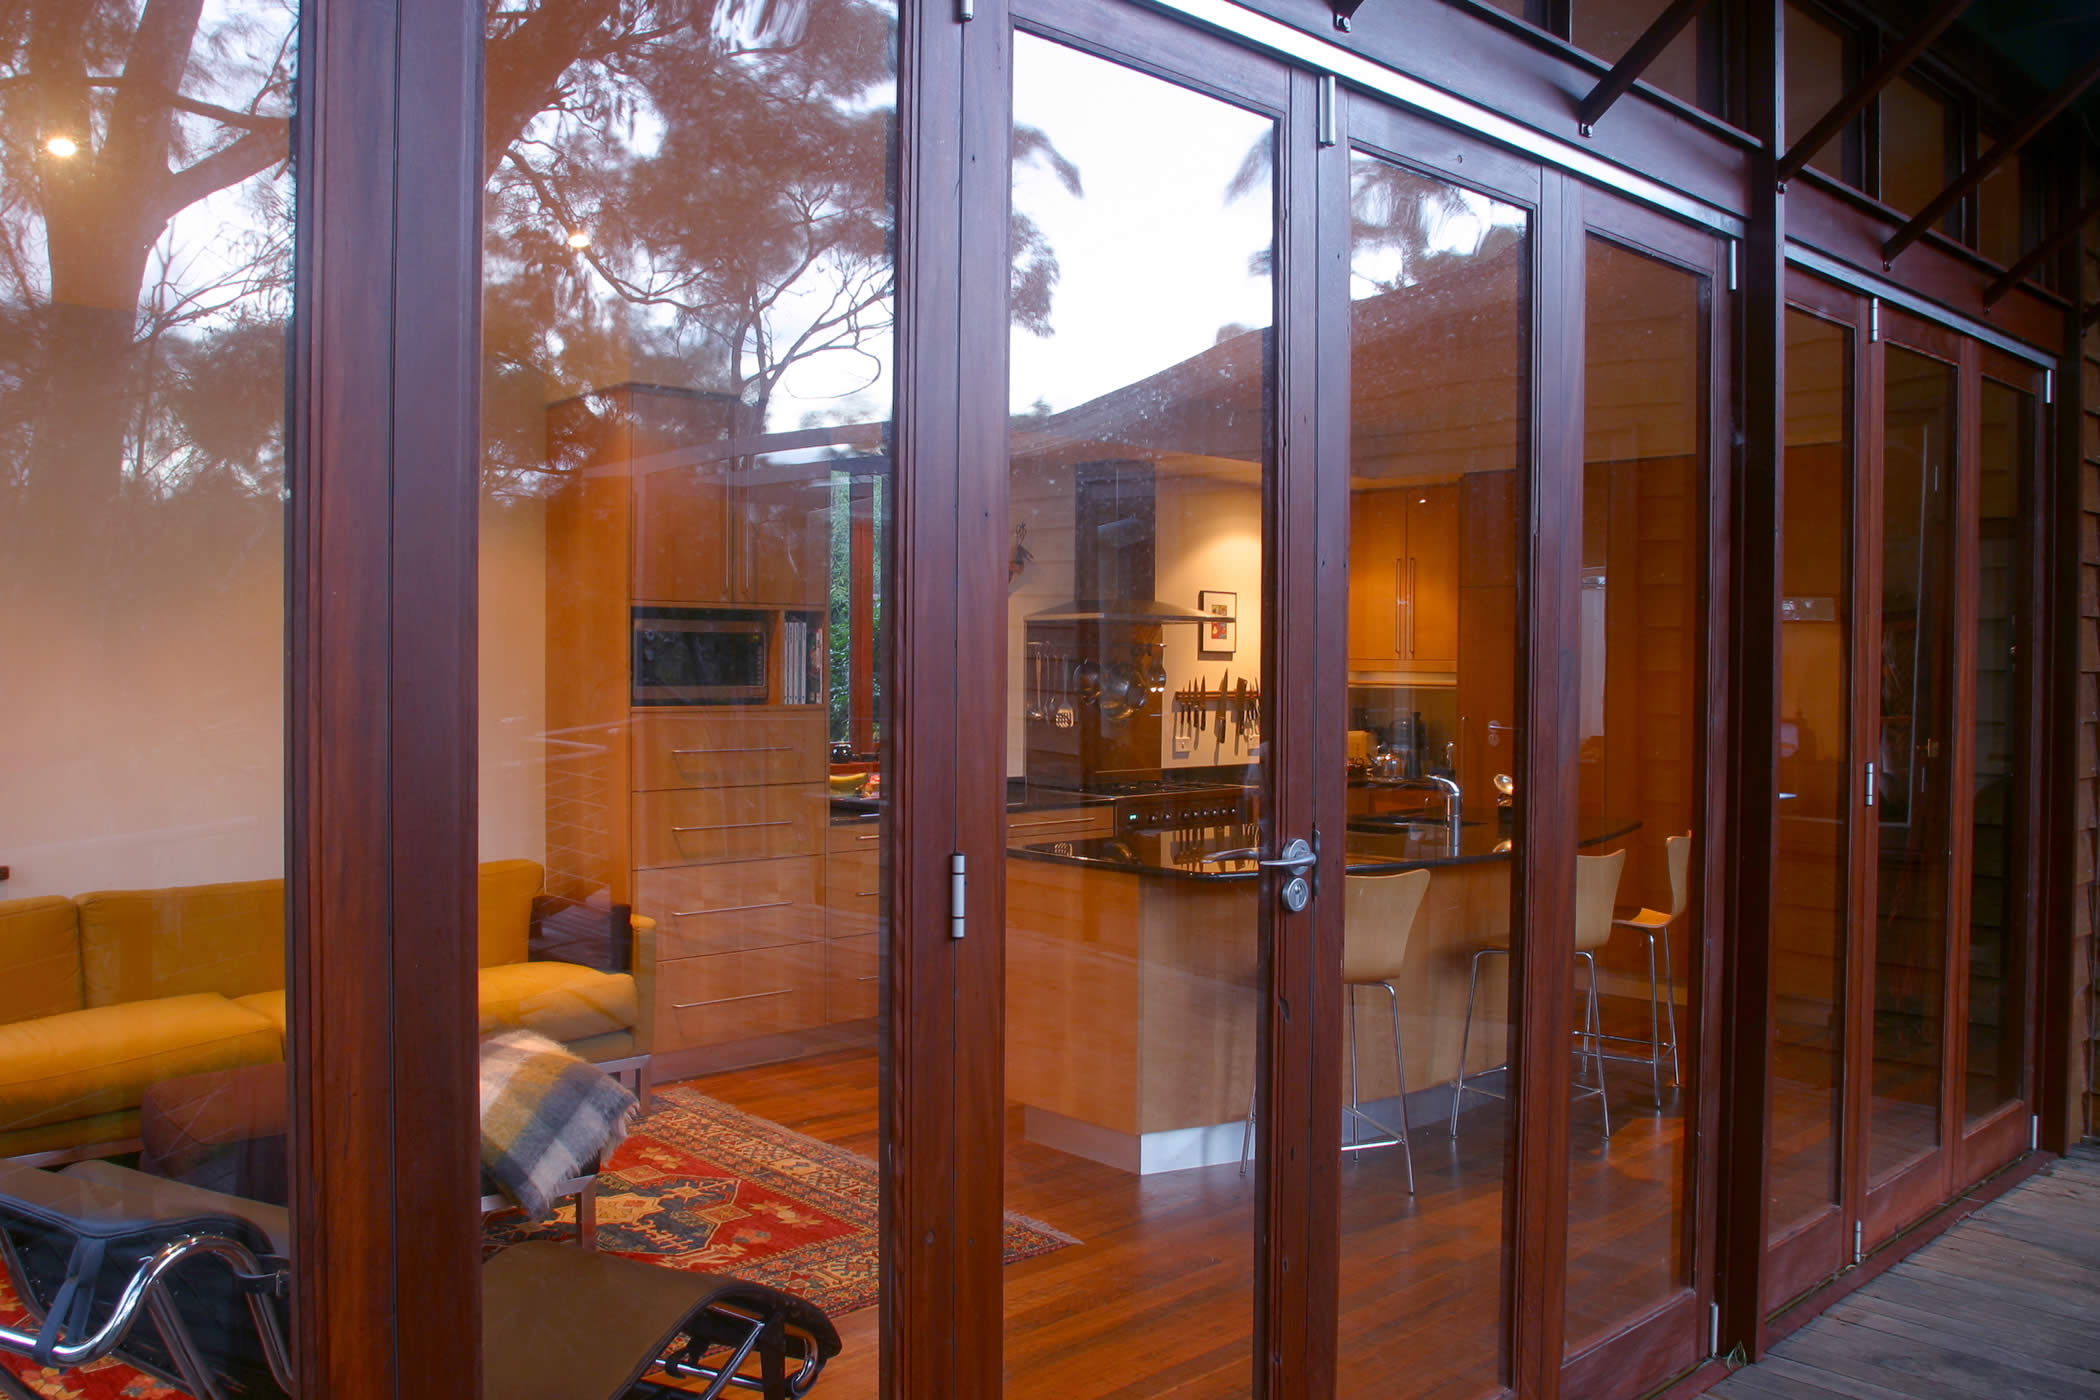 House Butler Extension: Detail of glazed recycled hardwood timber bi-fold doors (mixed eucalyptus) with view to interior recycled hardwood flooring. Photo by Peter Whyte.